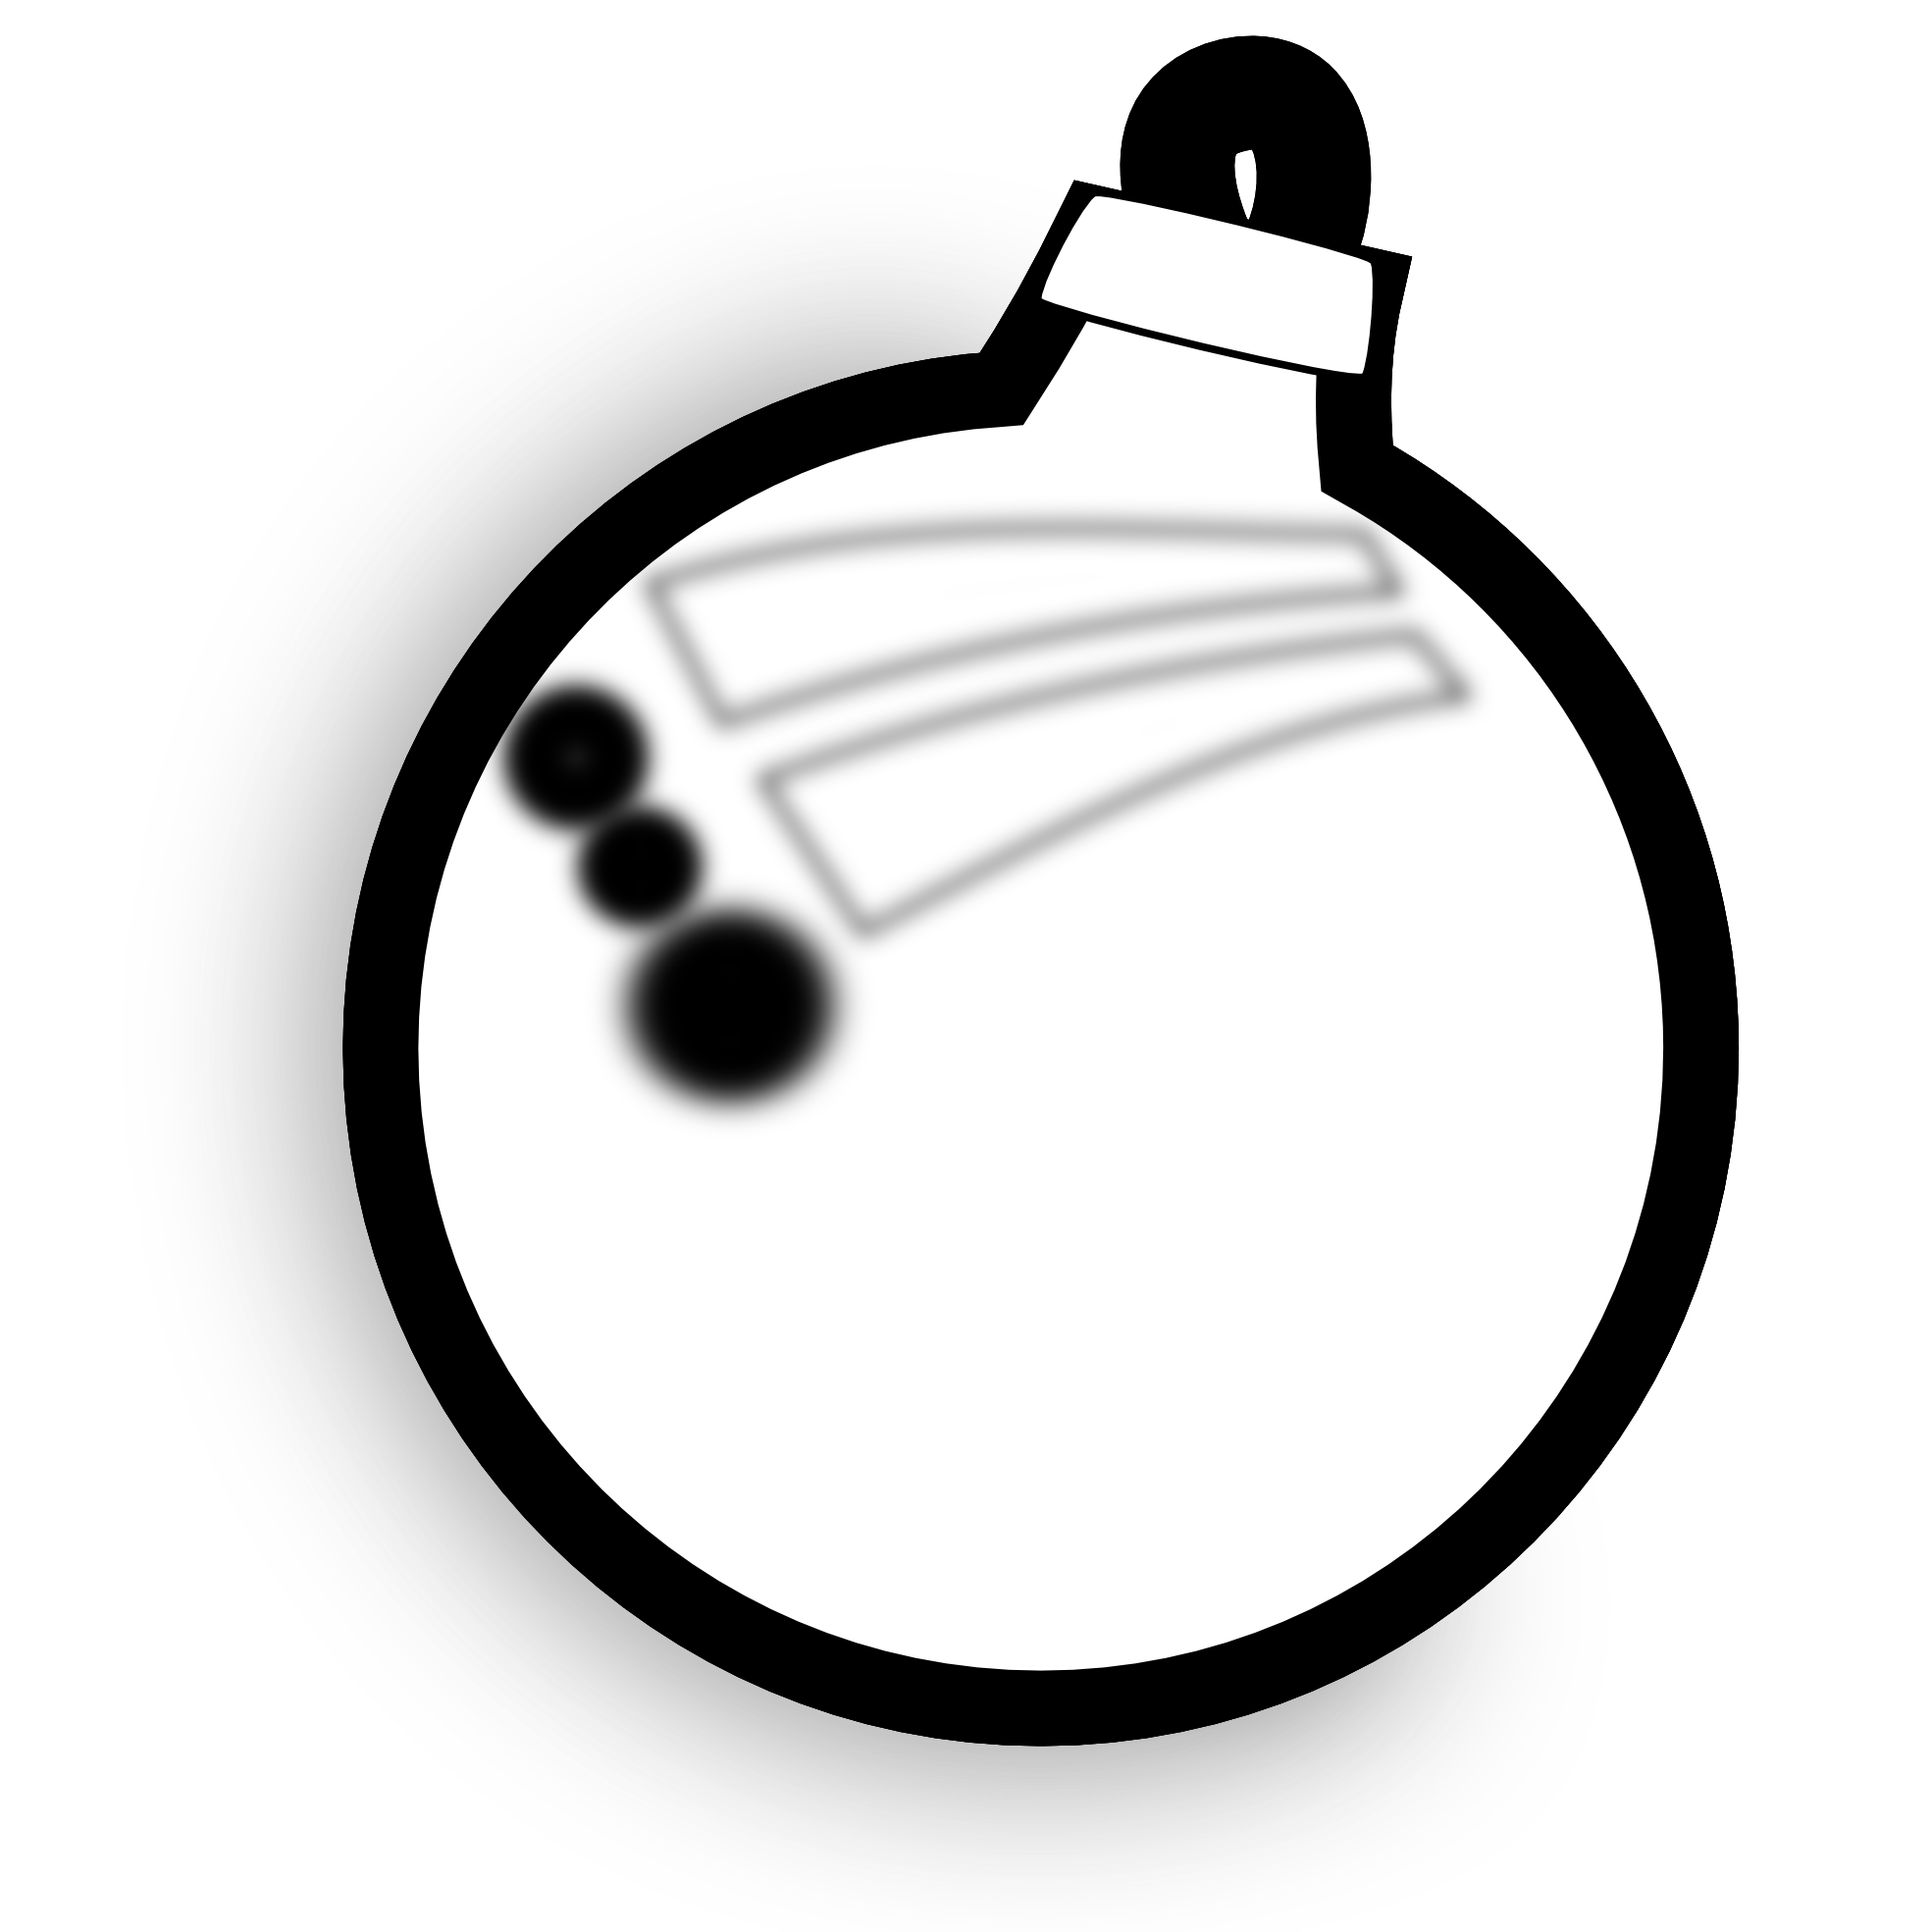 1969x1969 Christmas Ornament Black And White Clipart